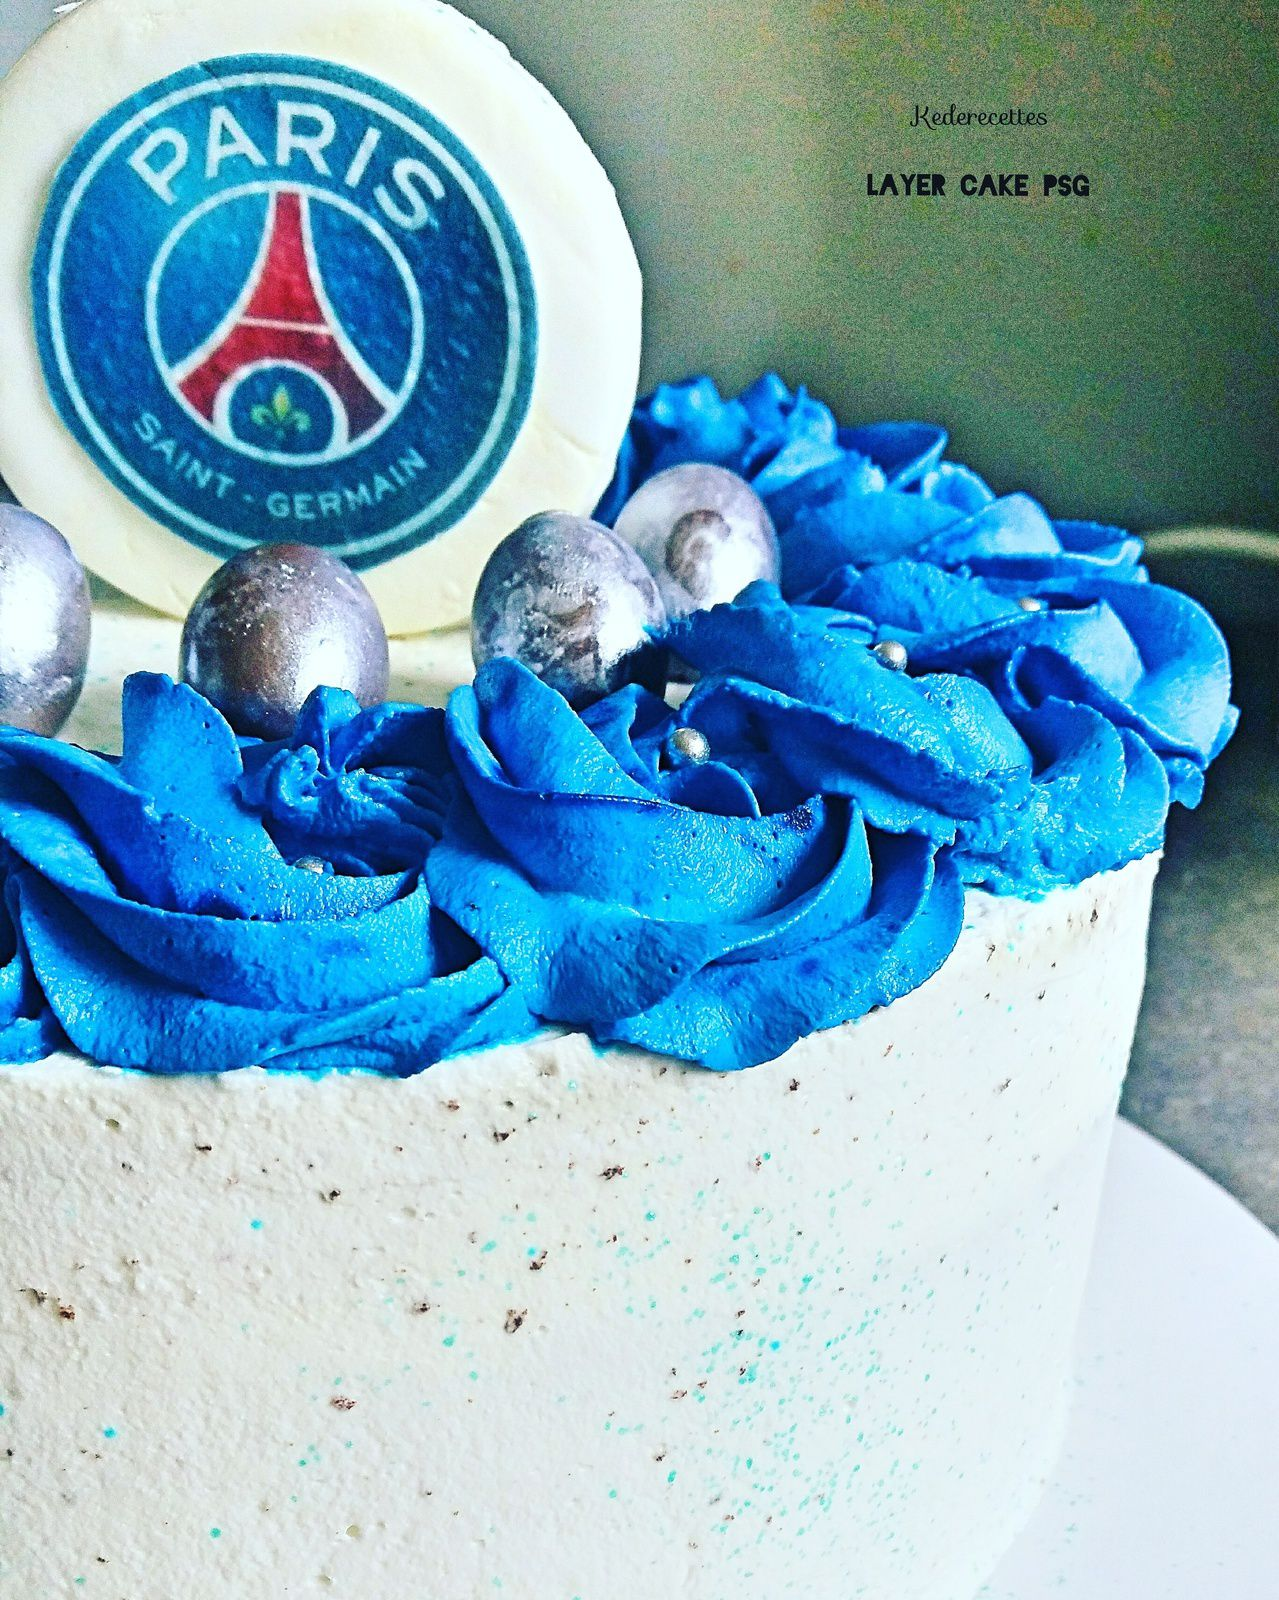 Layer Cake PSG